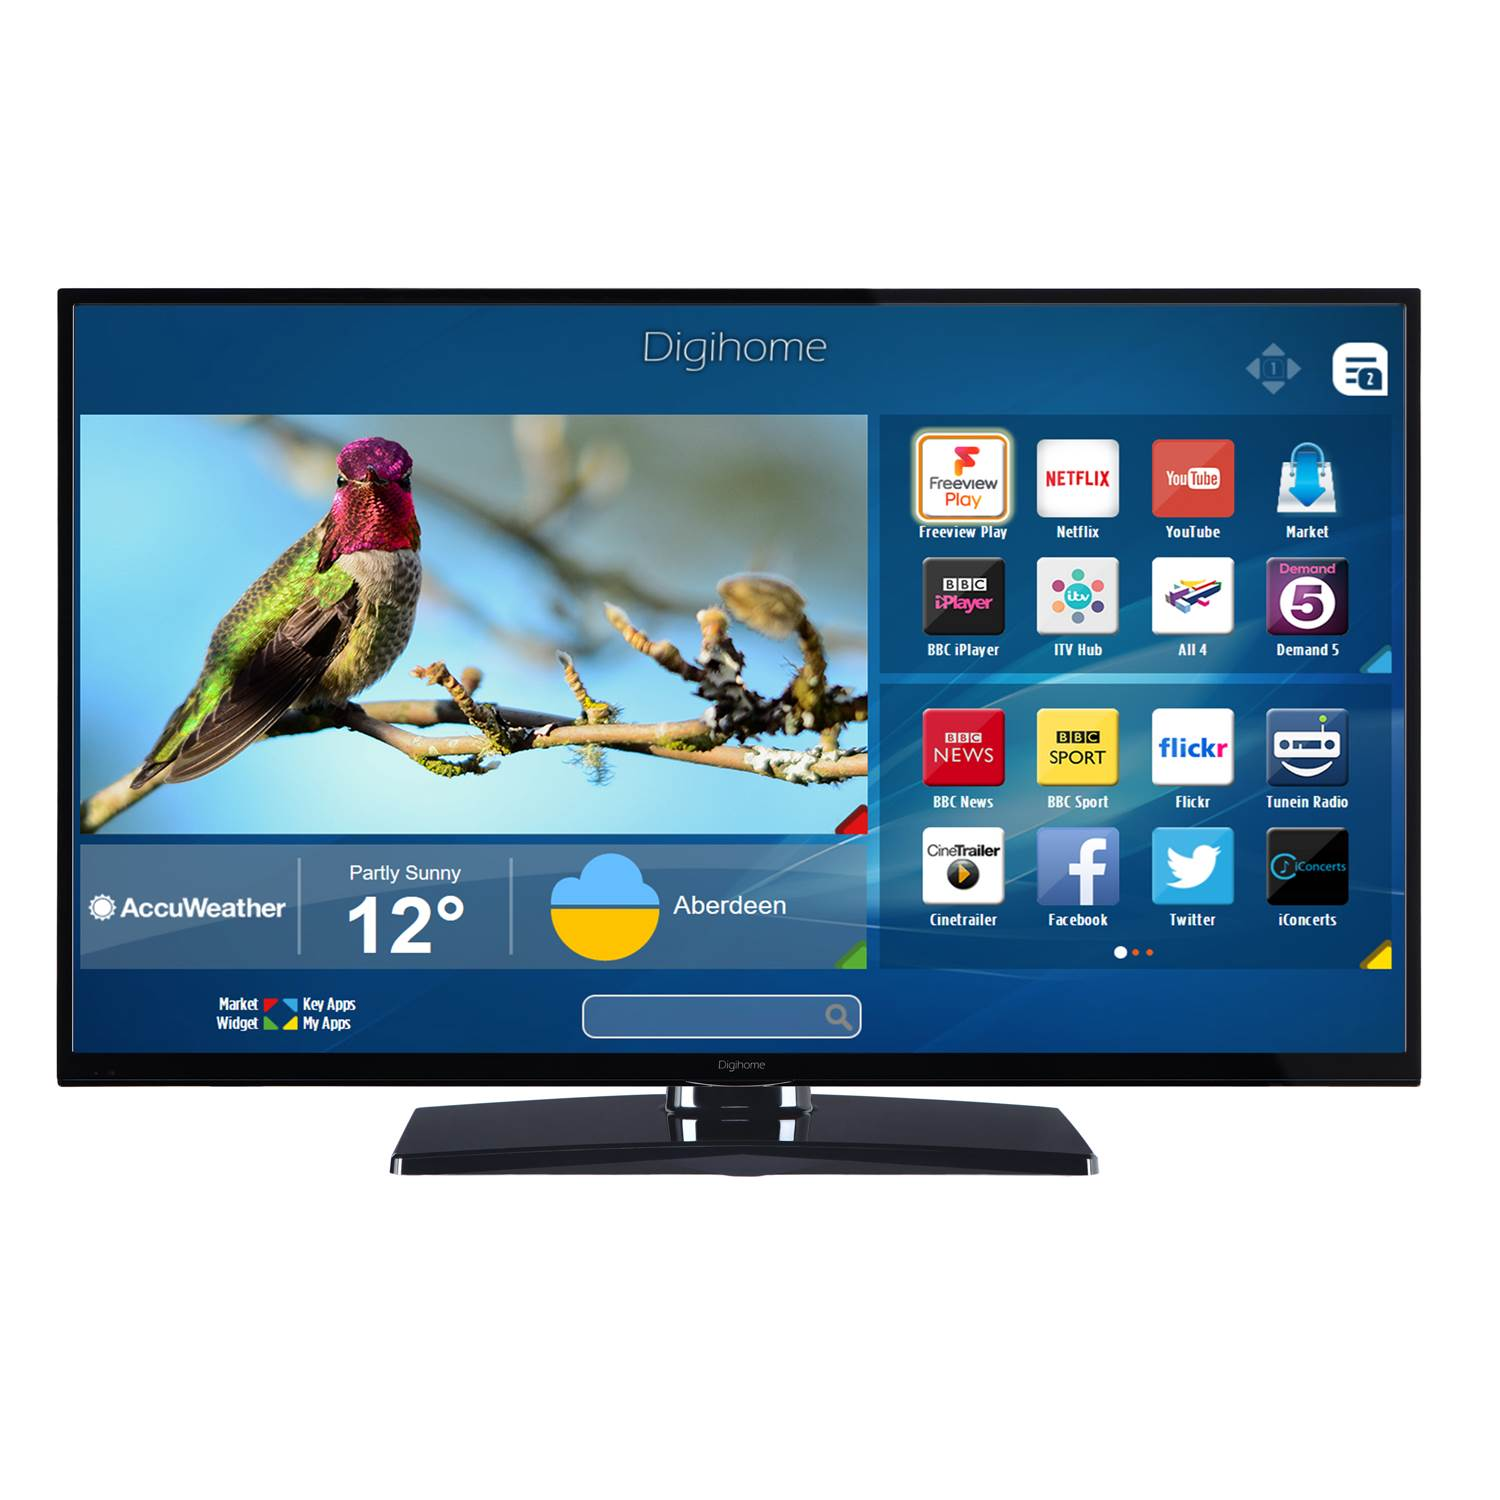 Digihome 55UHDHDR 55 Inch 4K Ultra HD HDR Freeview WiFi Smart LED TV ...